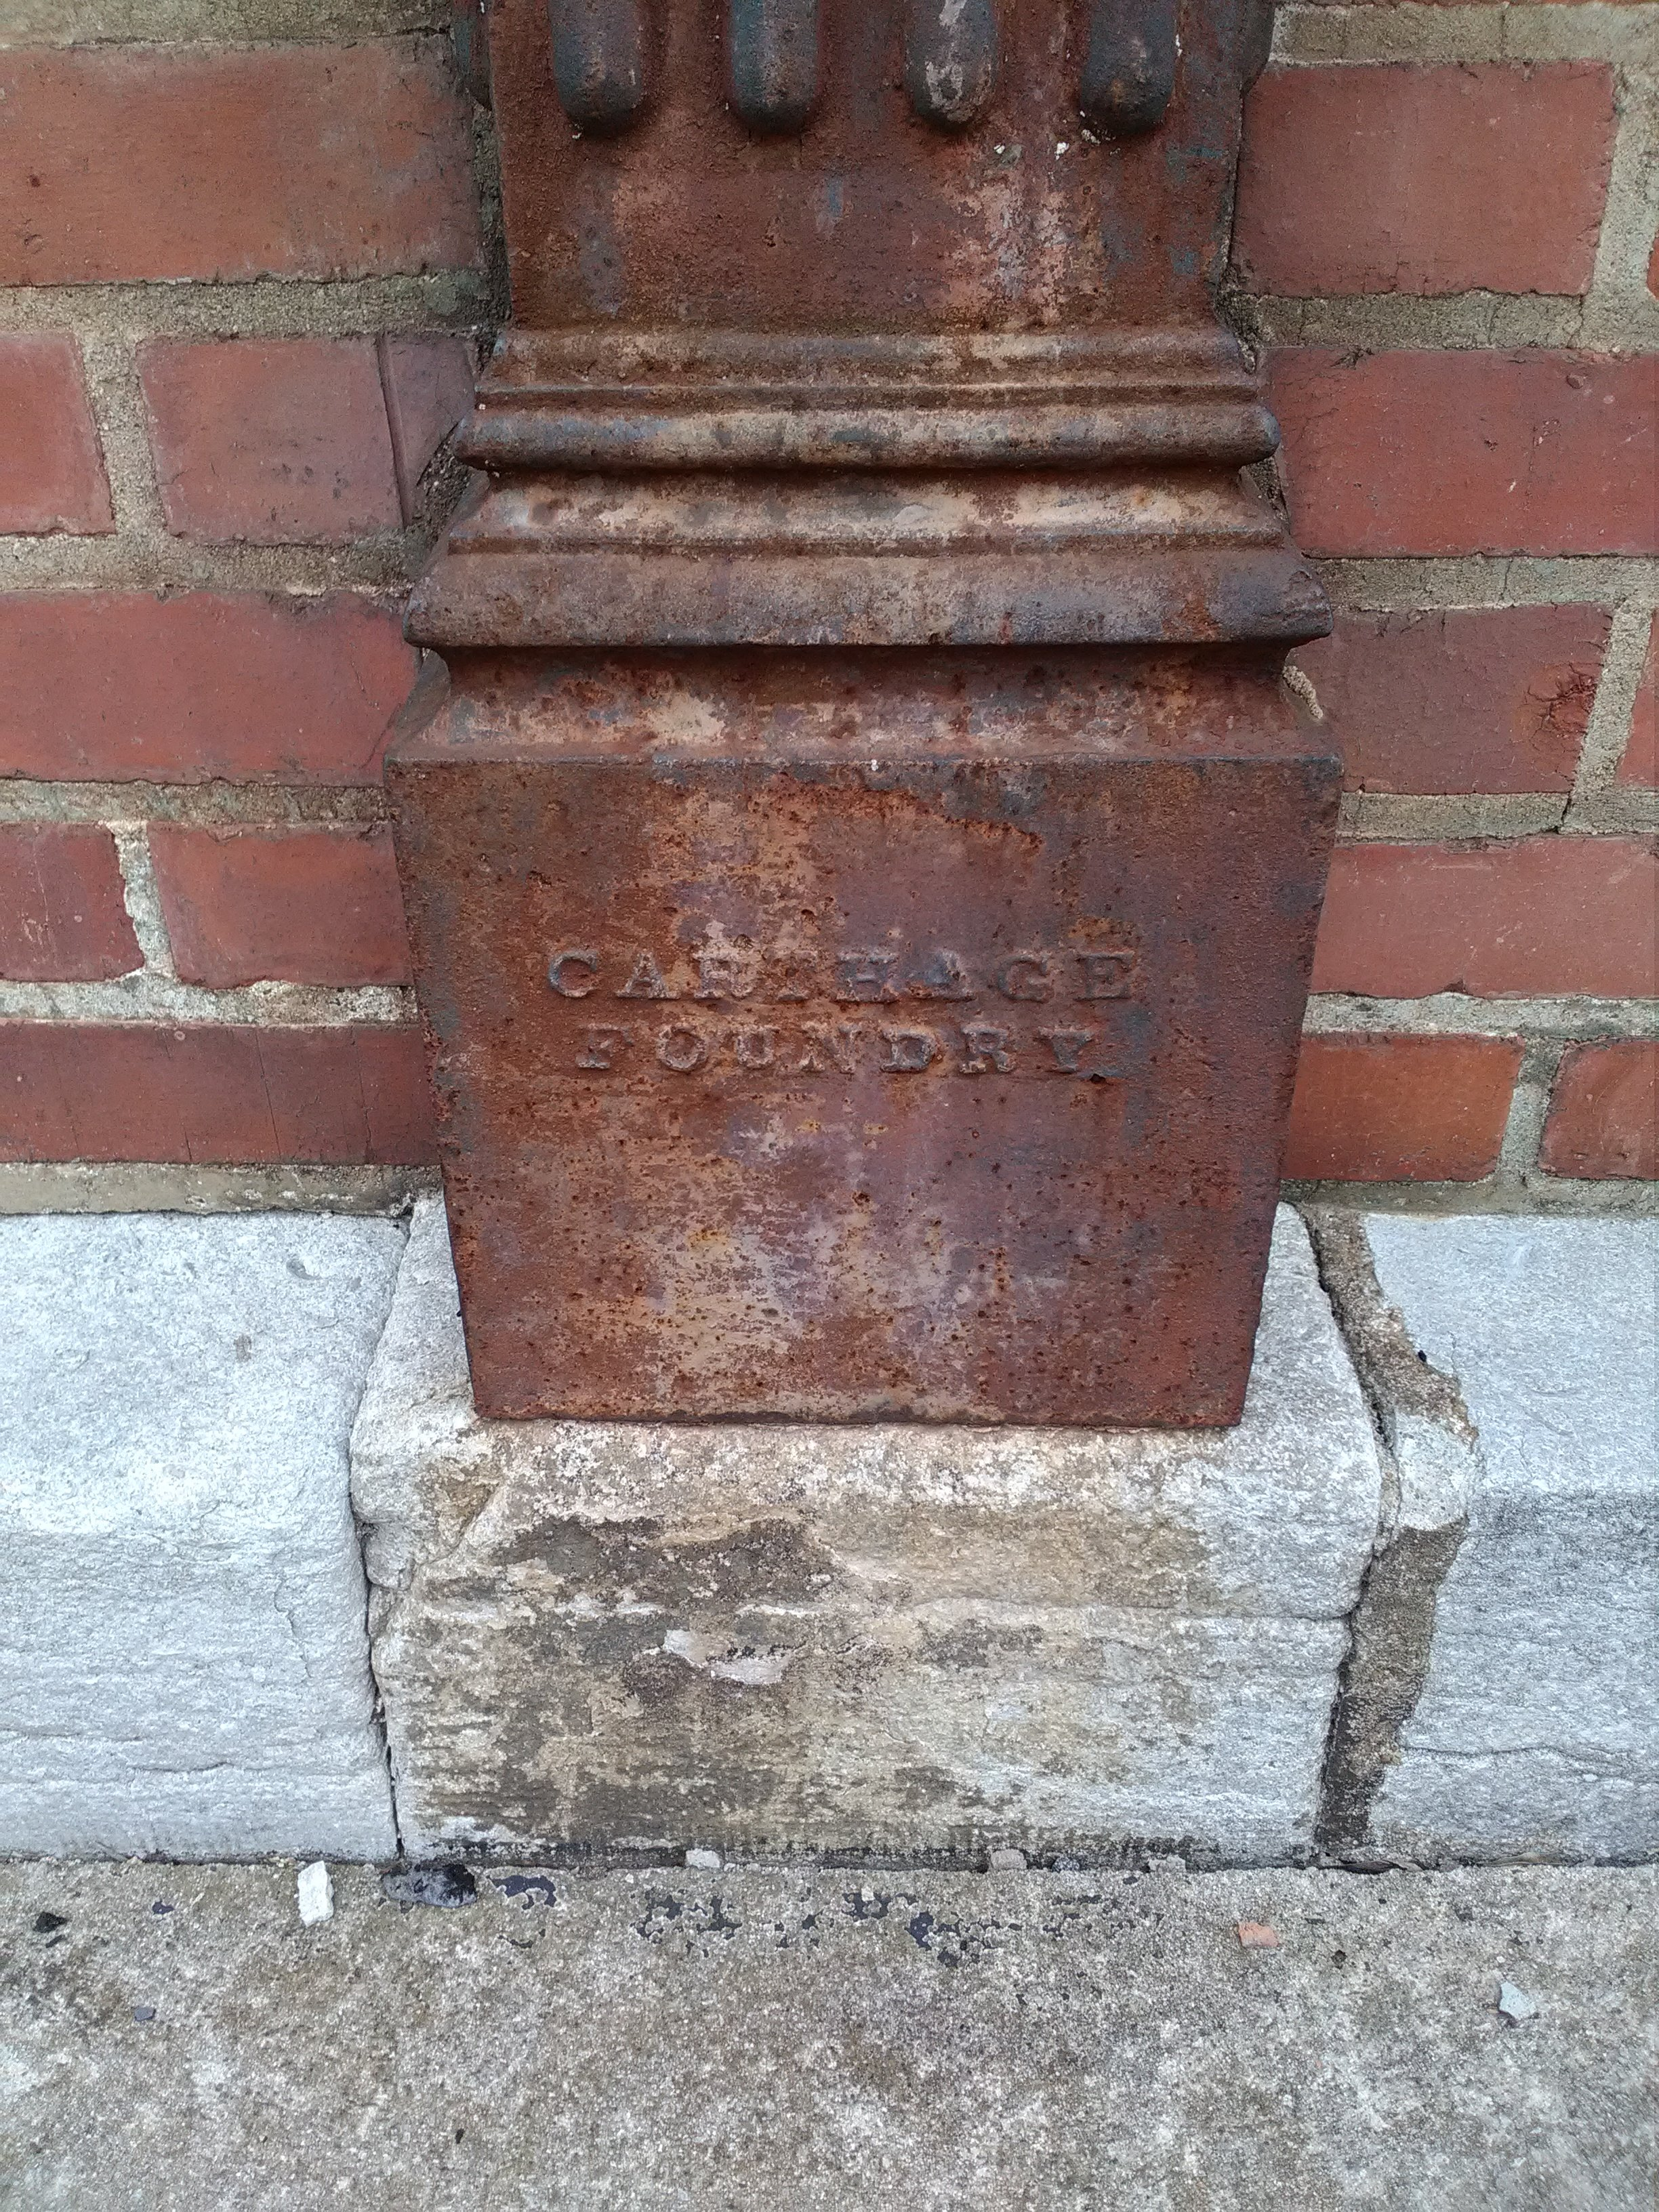 Carthage Foundry name at bottom of cast iron pillar details.